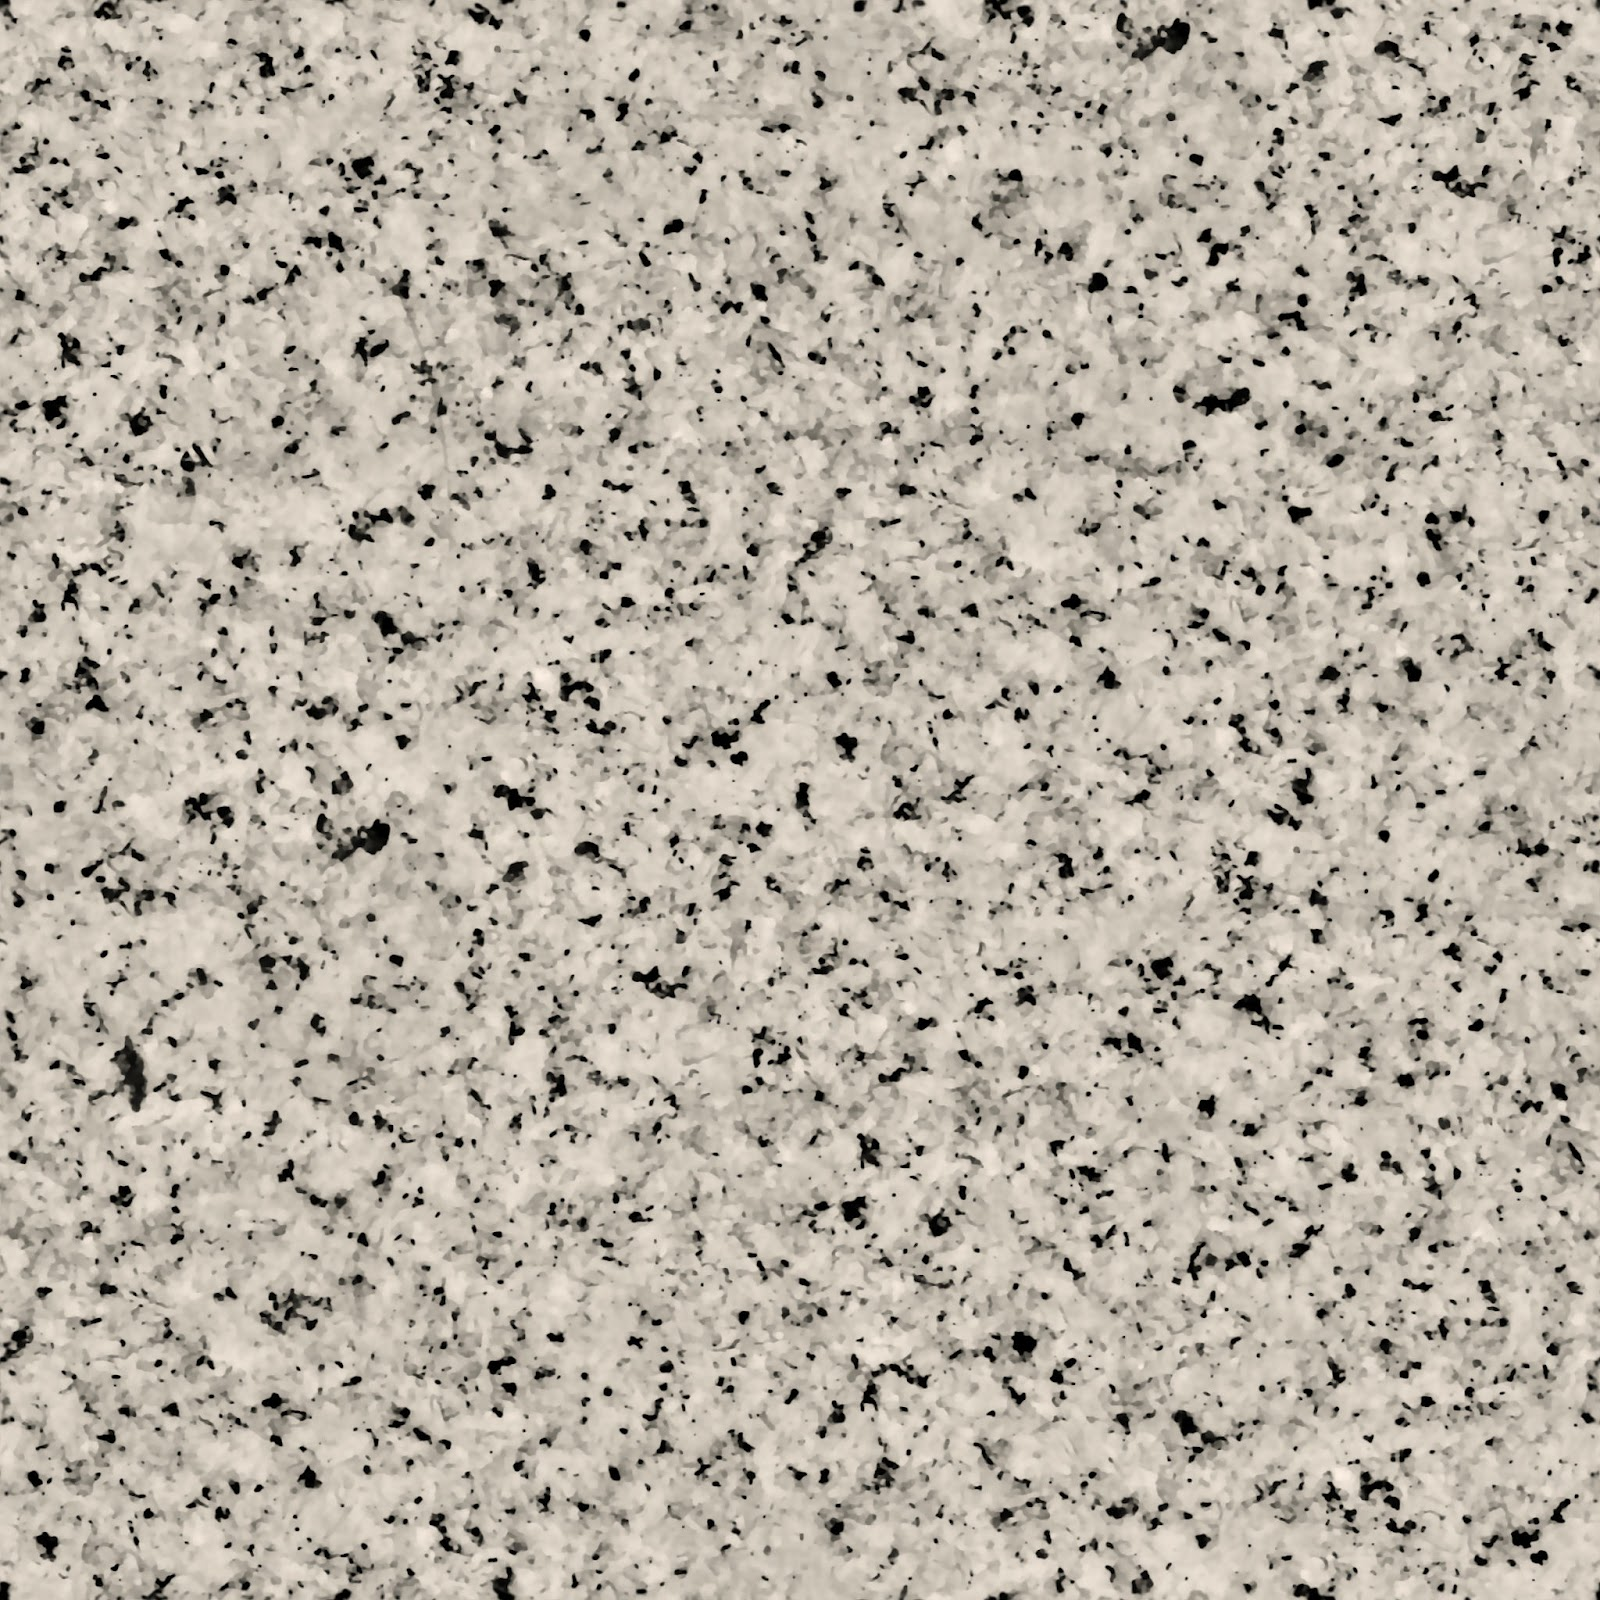 black marble texture tile. Speckled Marble Black Texture Tile